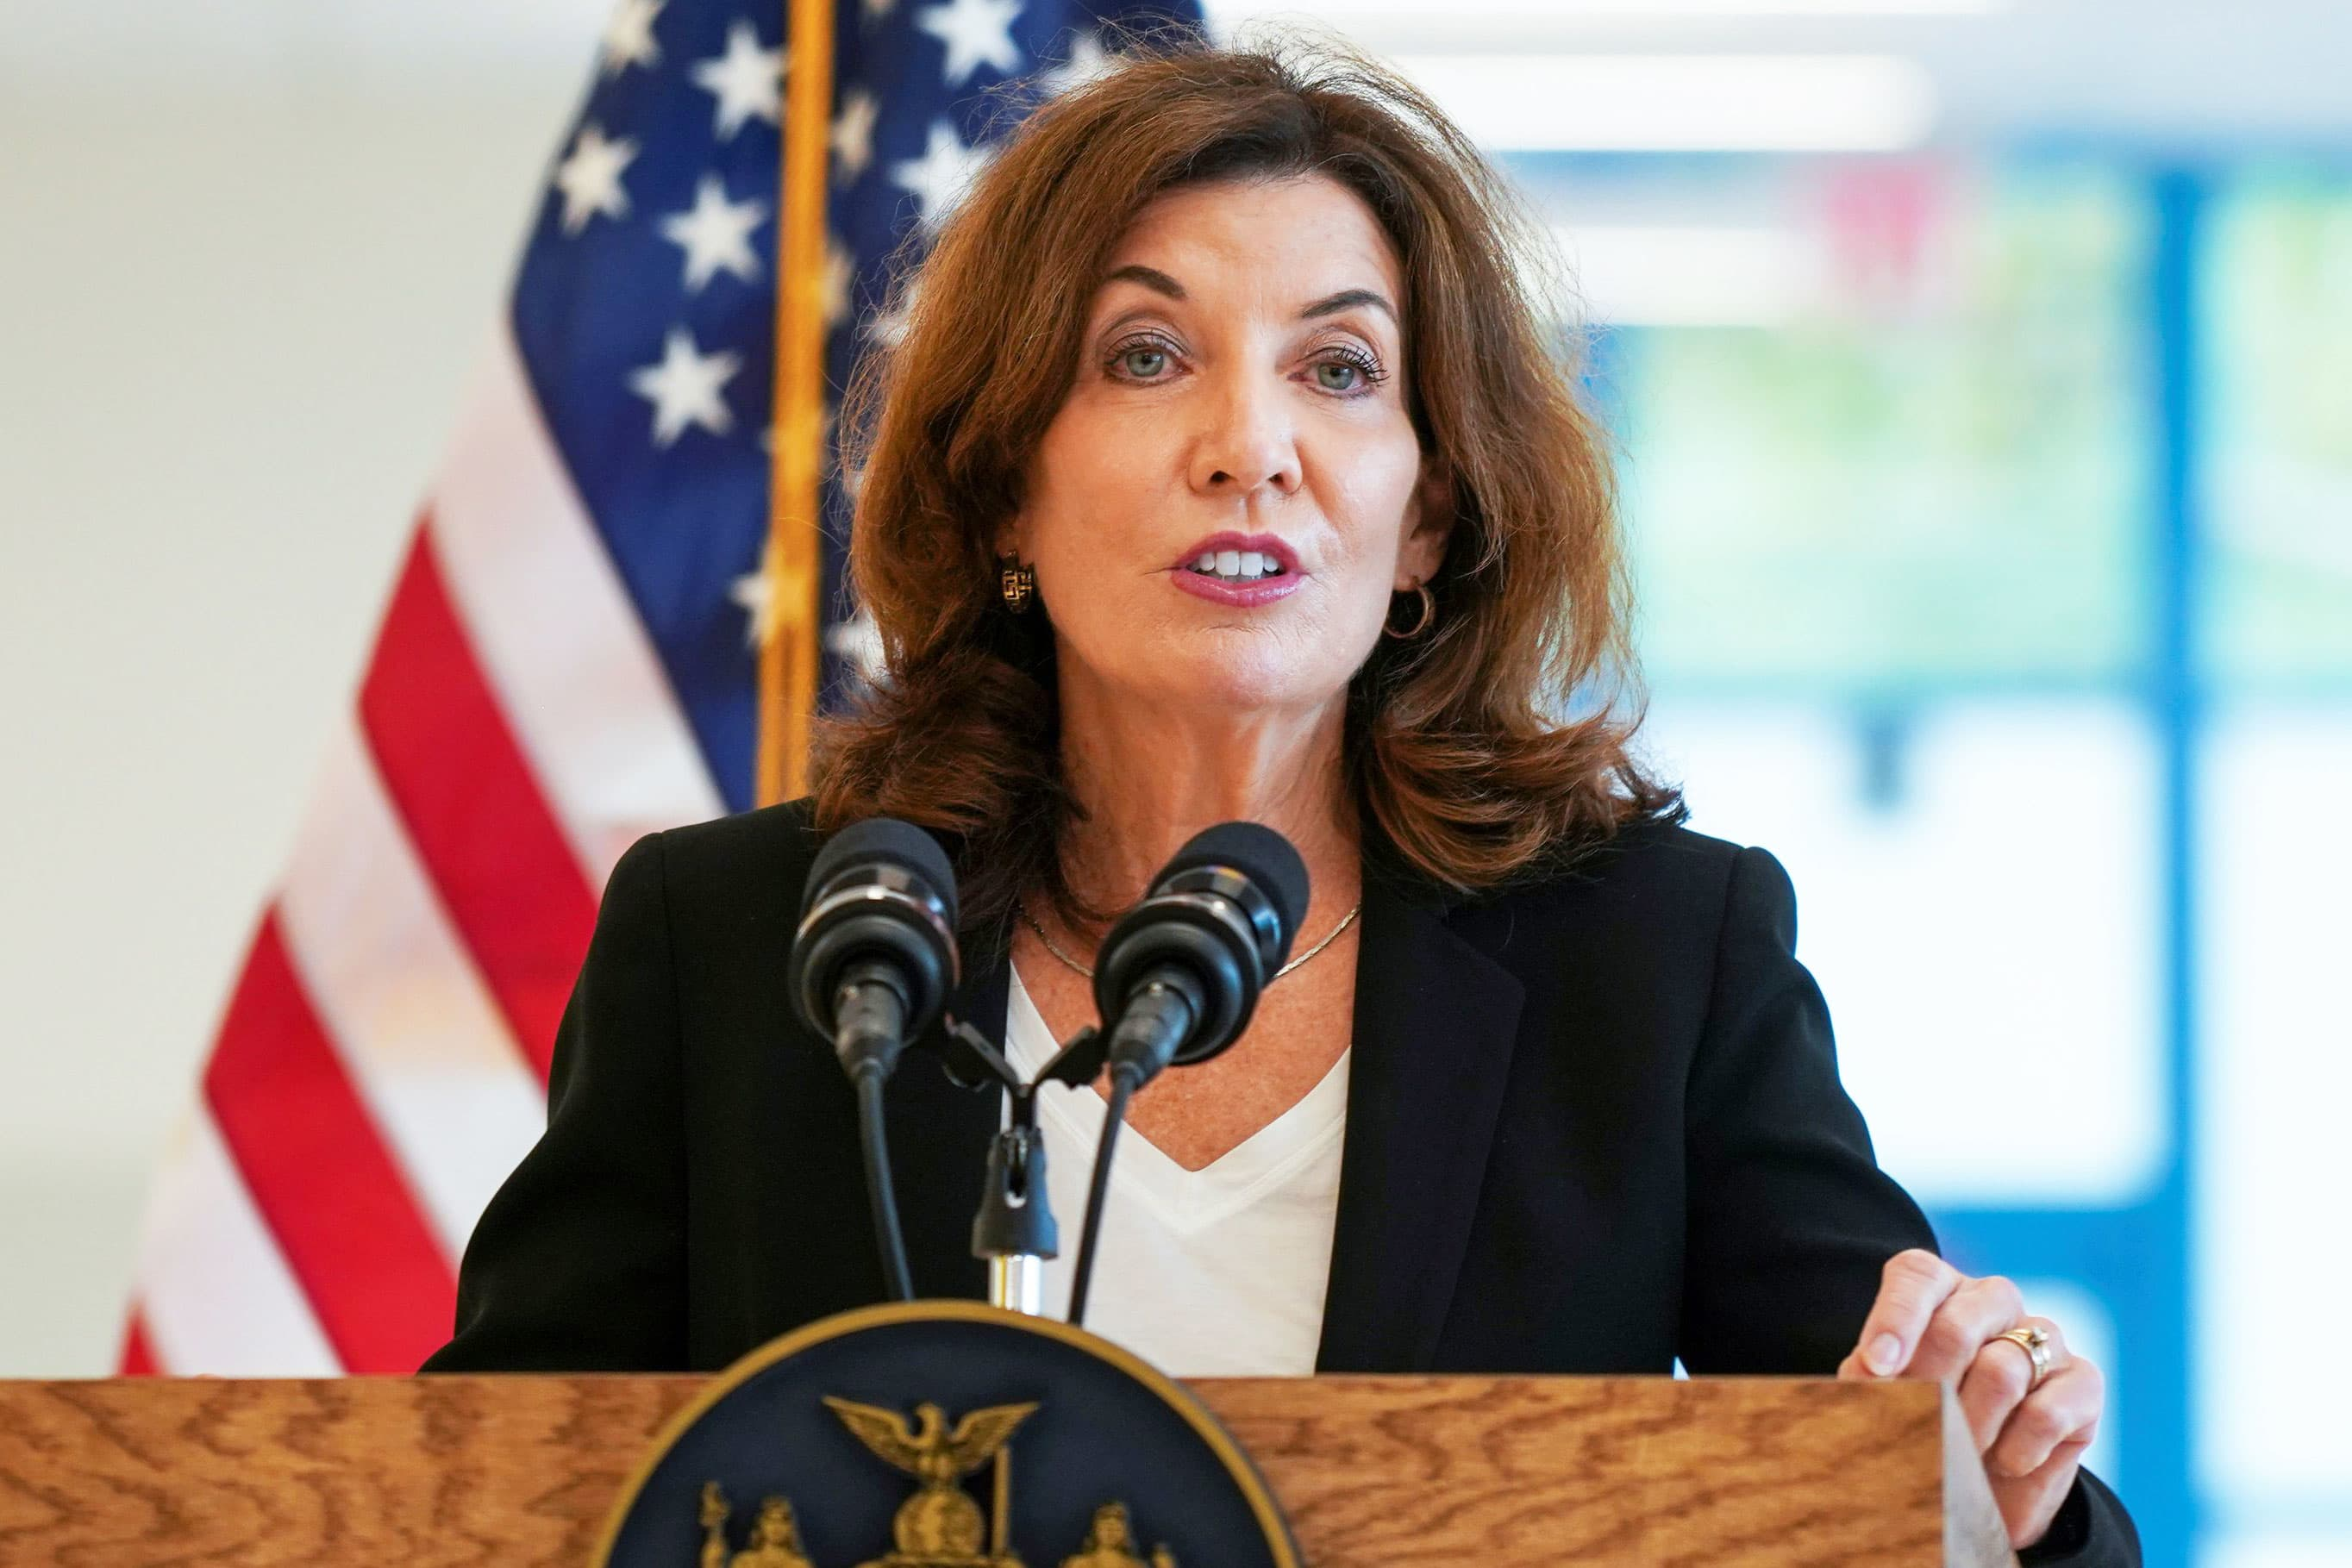 Gov. Hochul acknowledges nearly 12,000 more New York Covid deaths than Cuomo counted